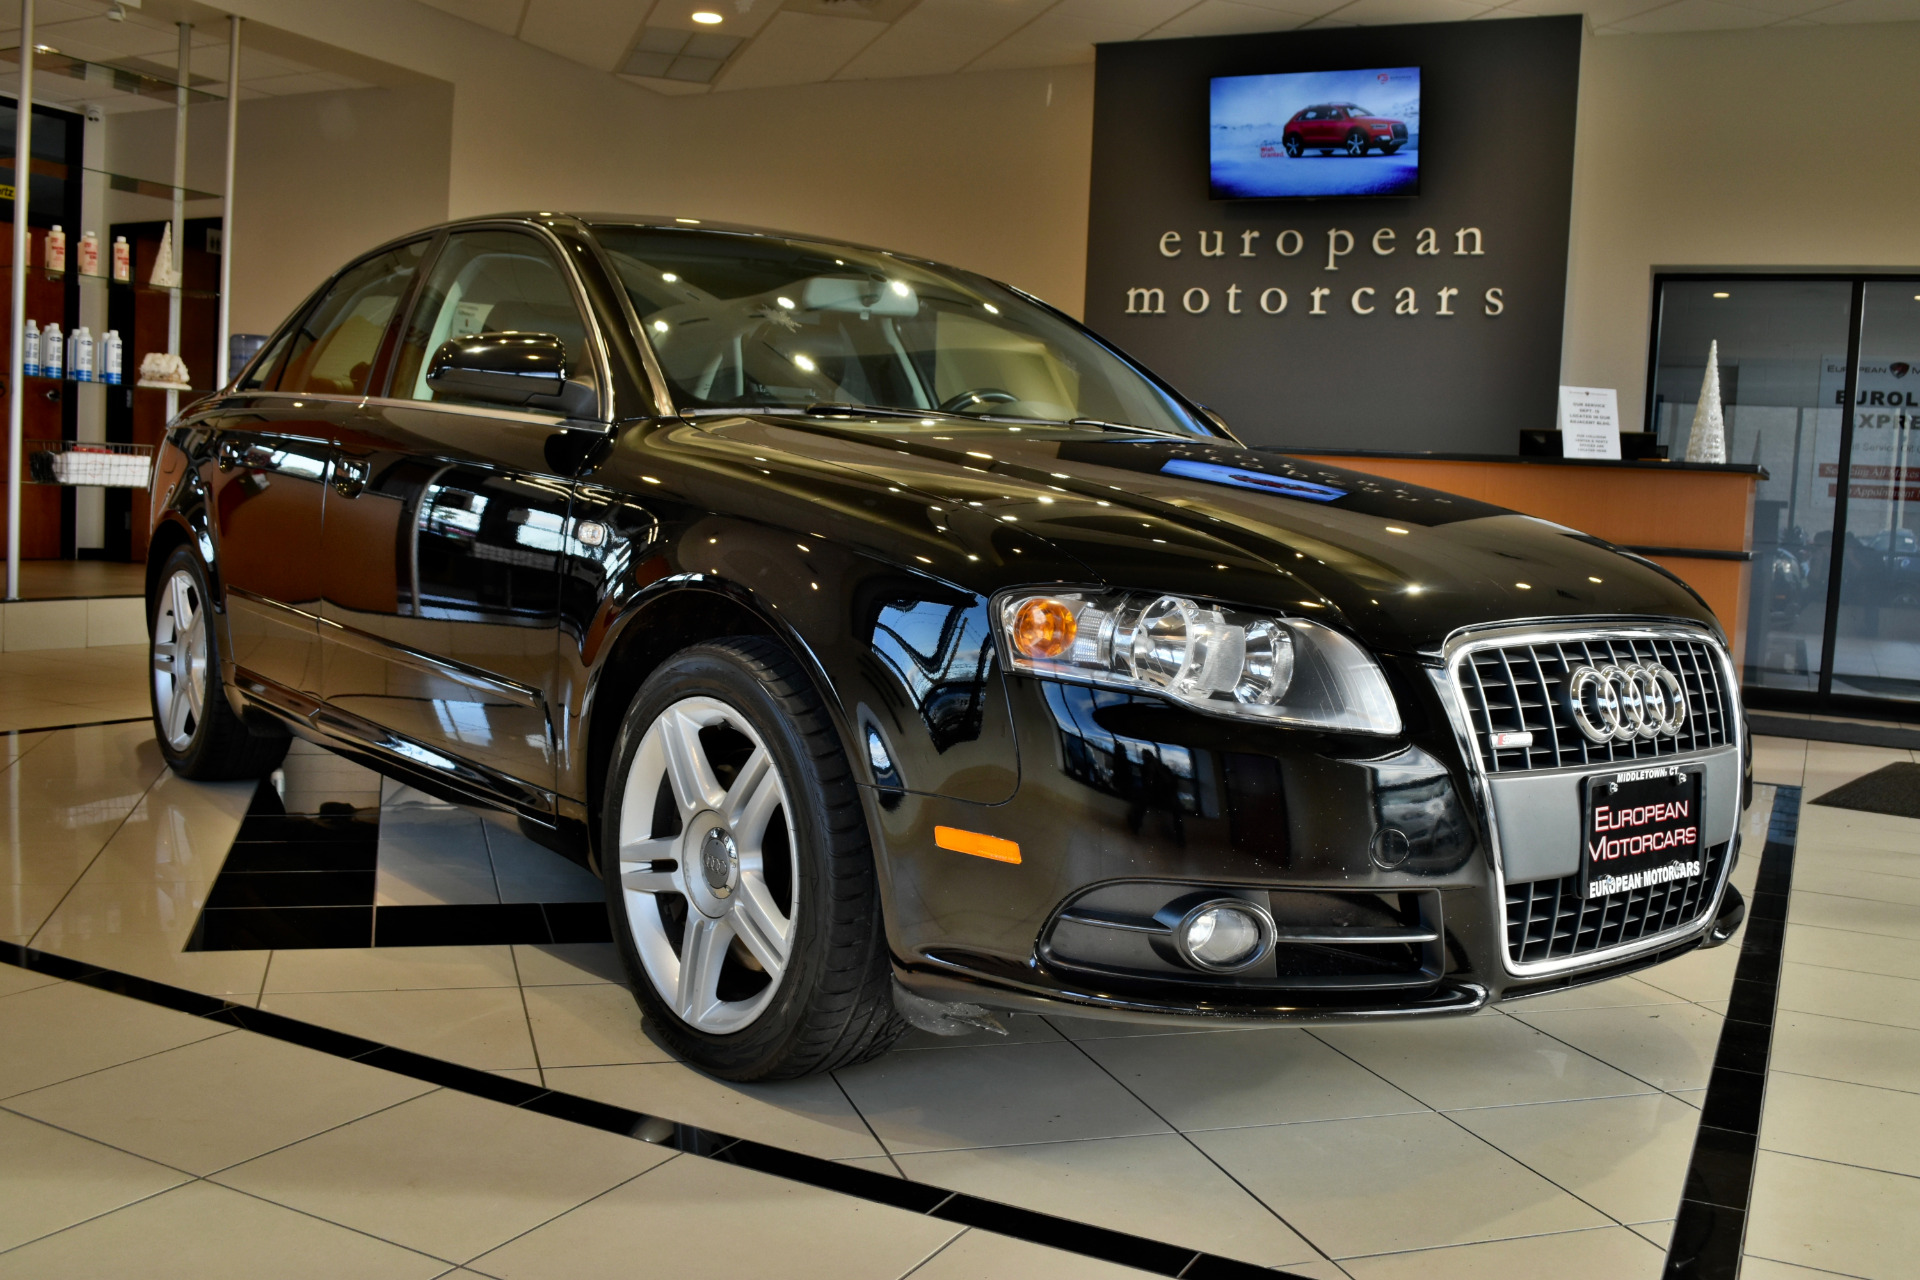 2008 audi a4 2 0t quattro for sale near middletown ct for Euro motors collision center